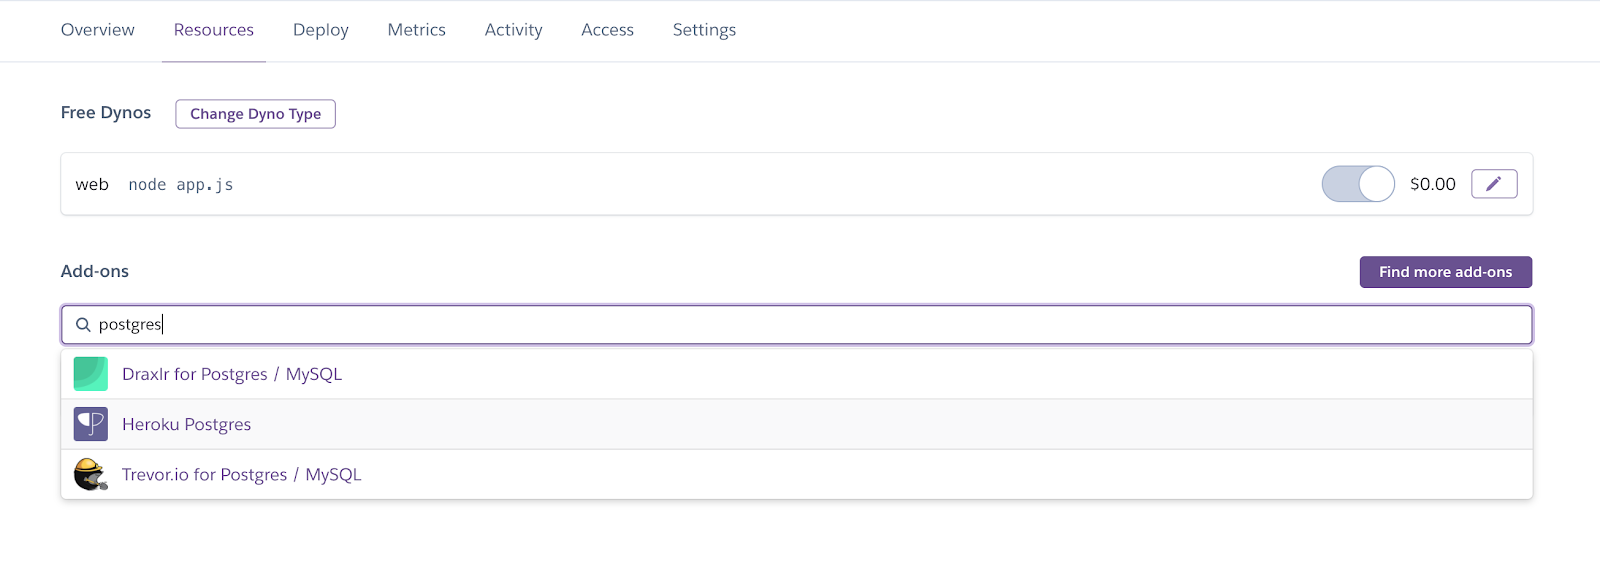 Heroku Postgres Add-On